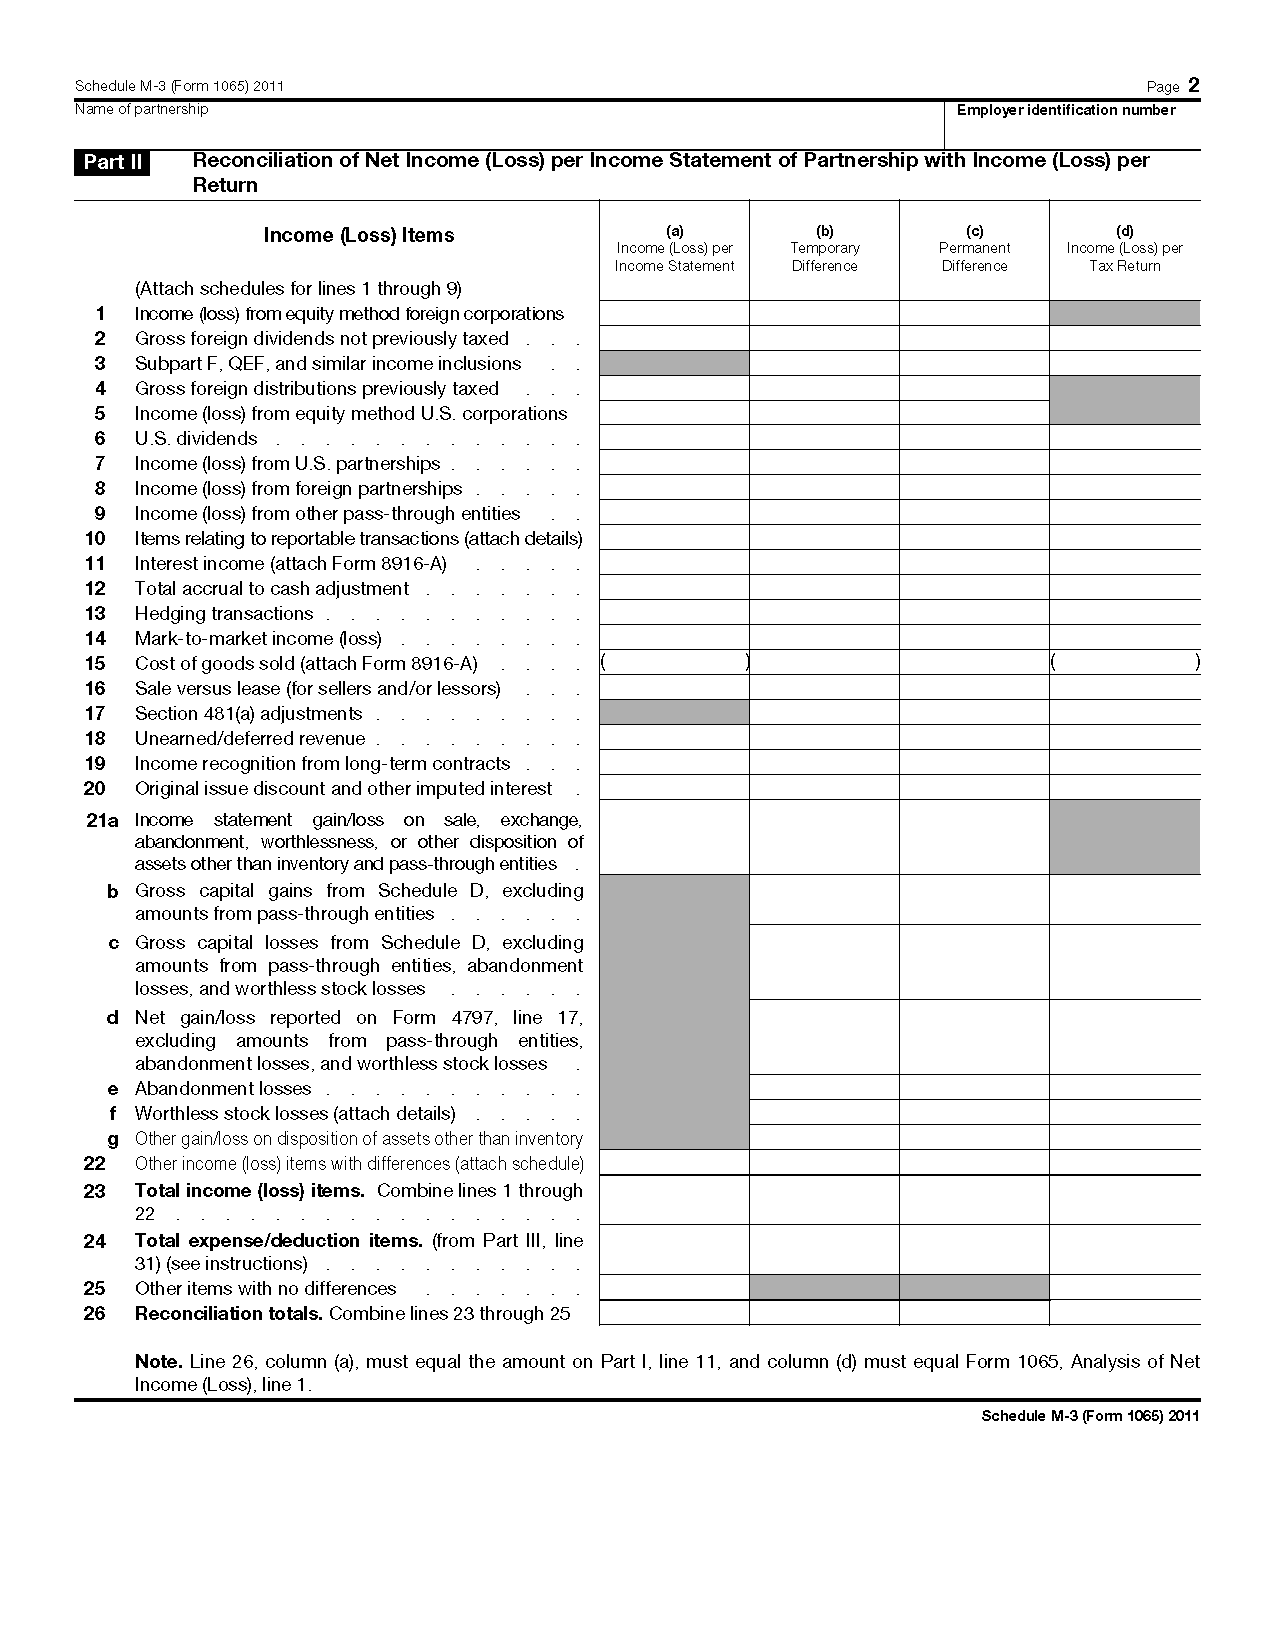 Form Schedule M 3 Net Income Loss Reconciliation For Certain Partnerships